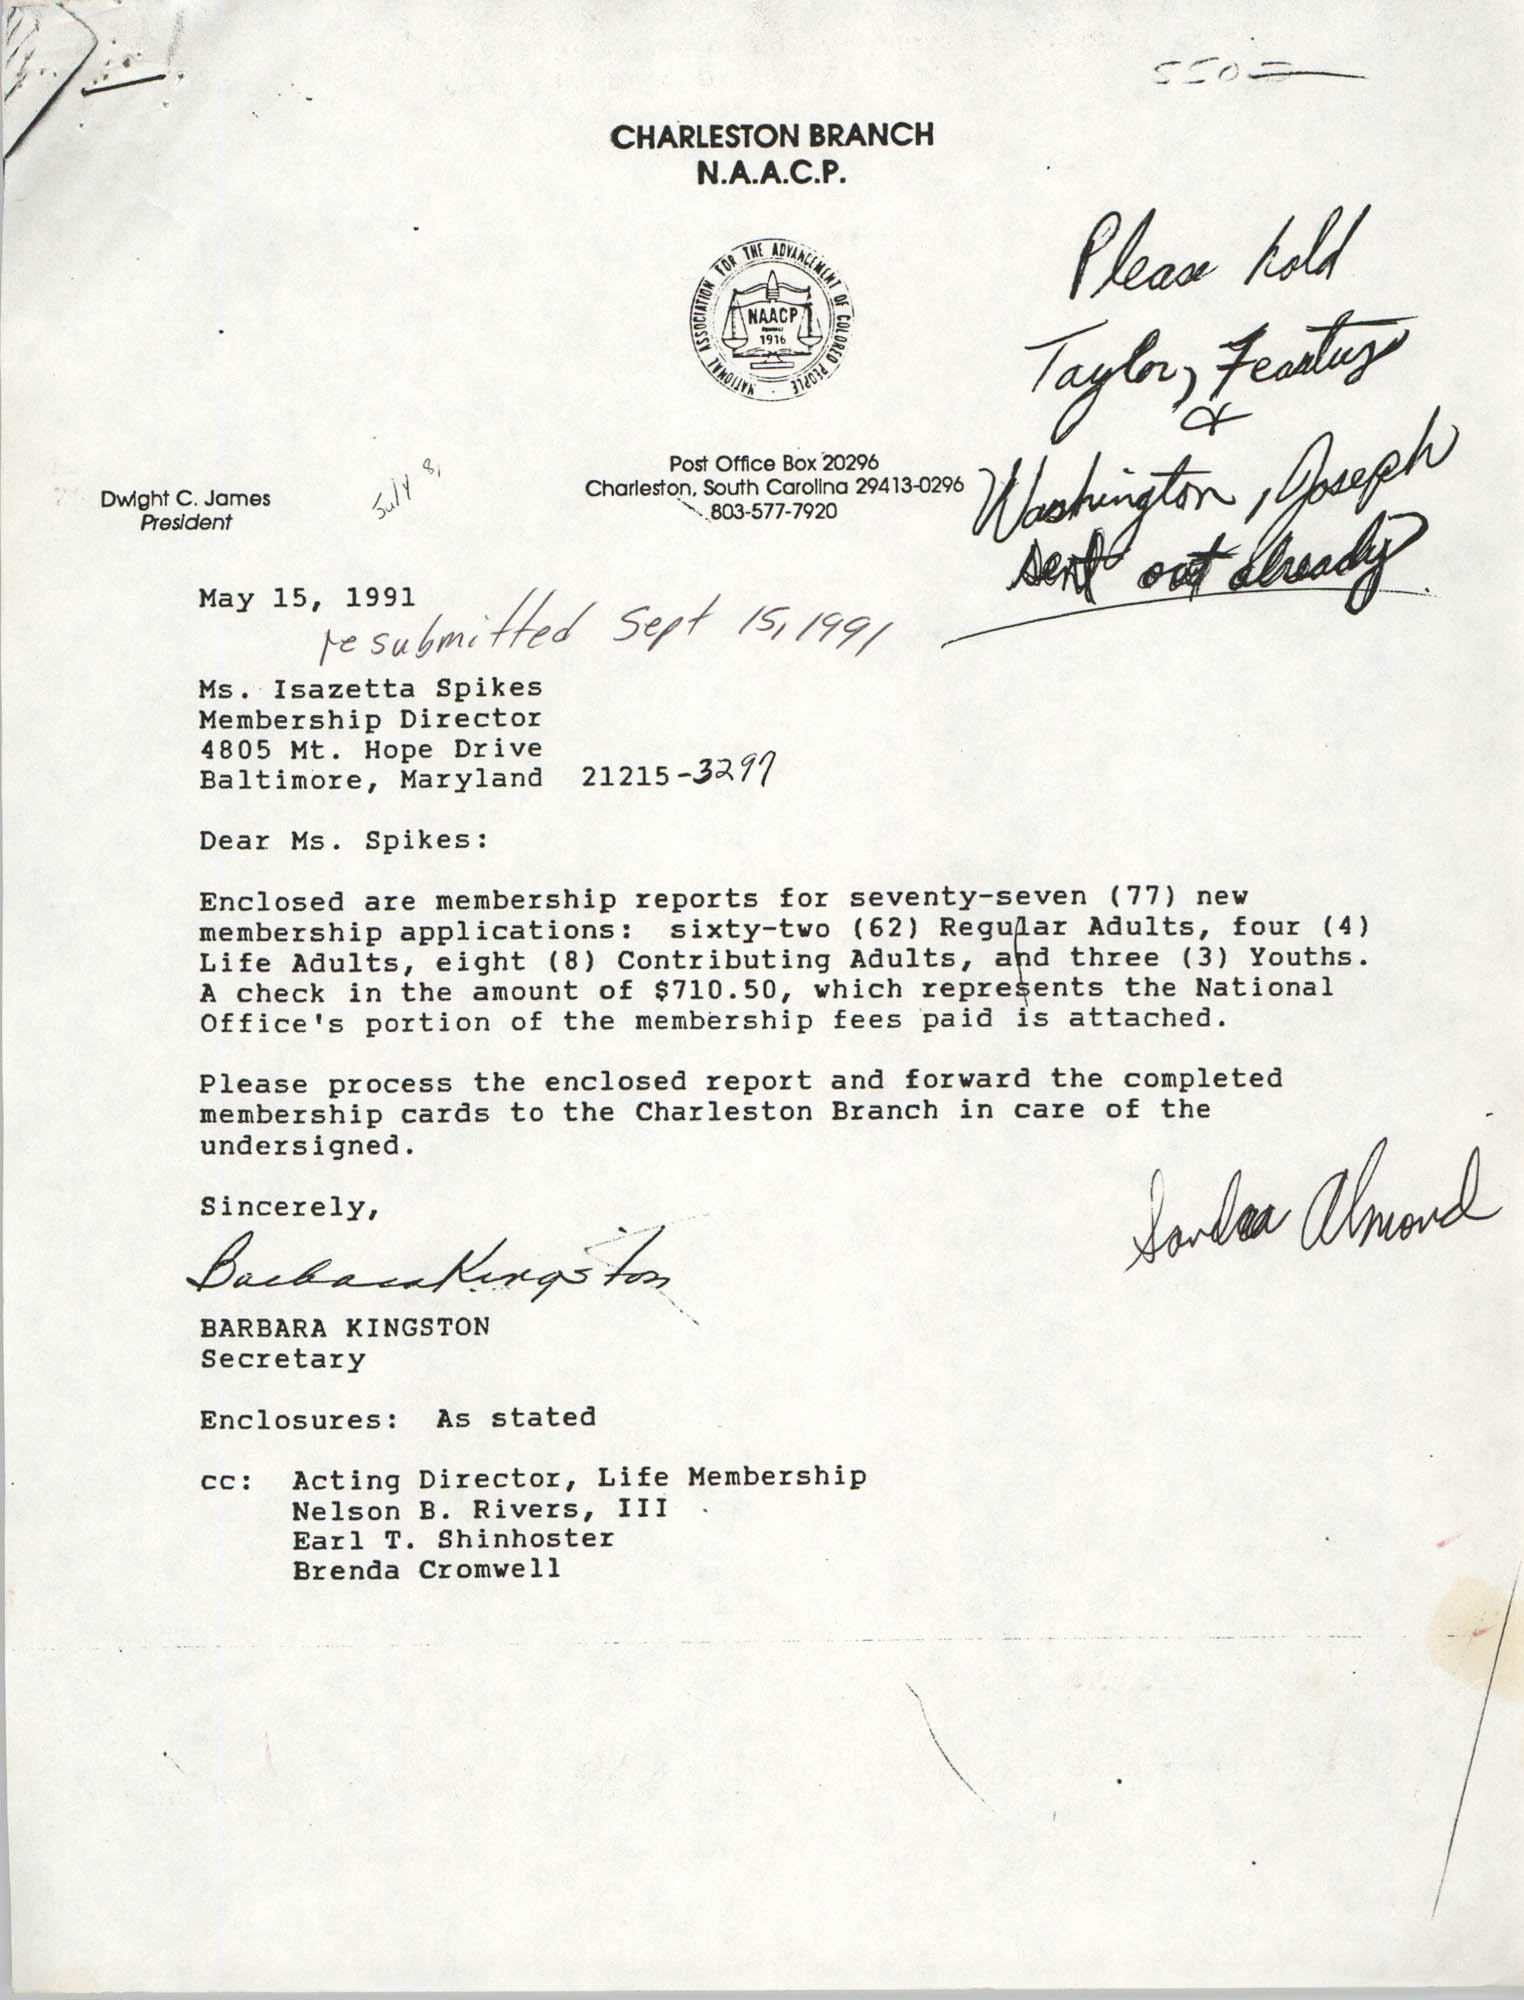 Missing Report, Letter from Barbara Kingston to Isazetta Spikes, May 15, 1991